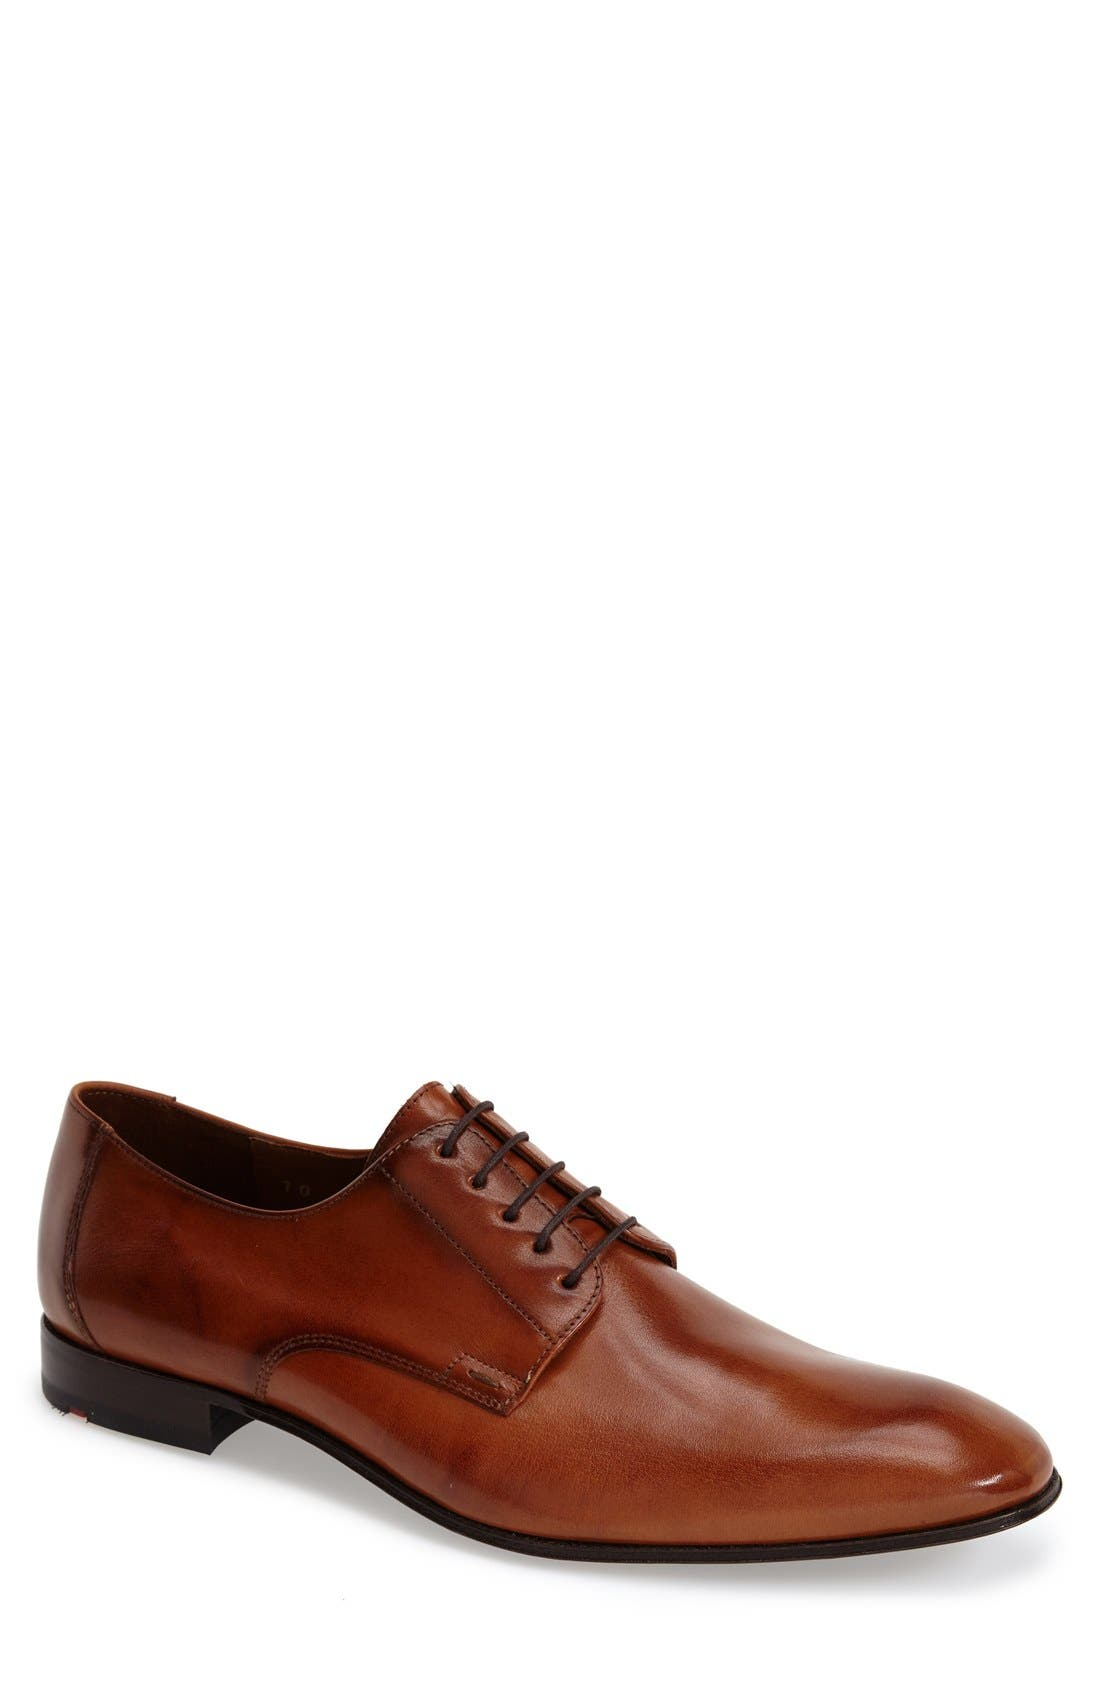 Lloyd Men's 'Laurin' Plain Toe Derby eJElNN4fxk